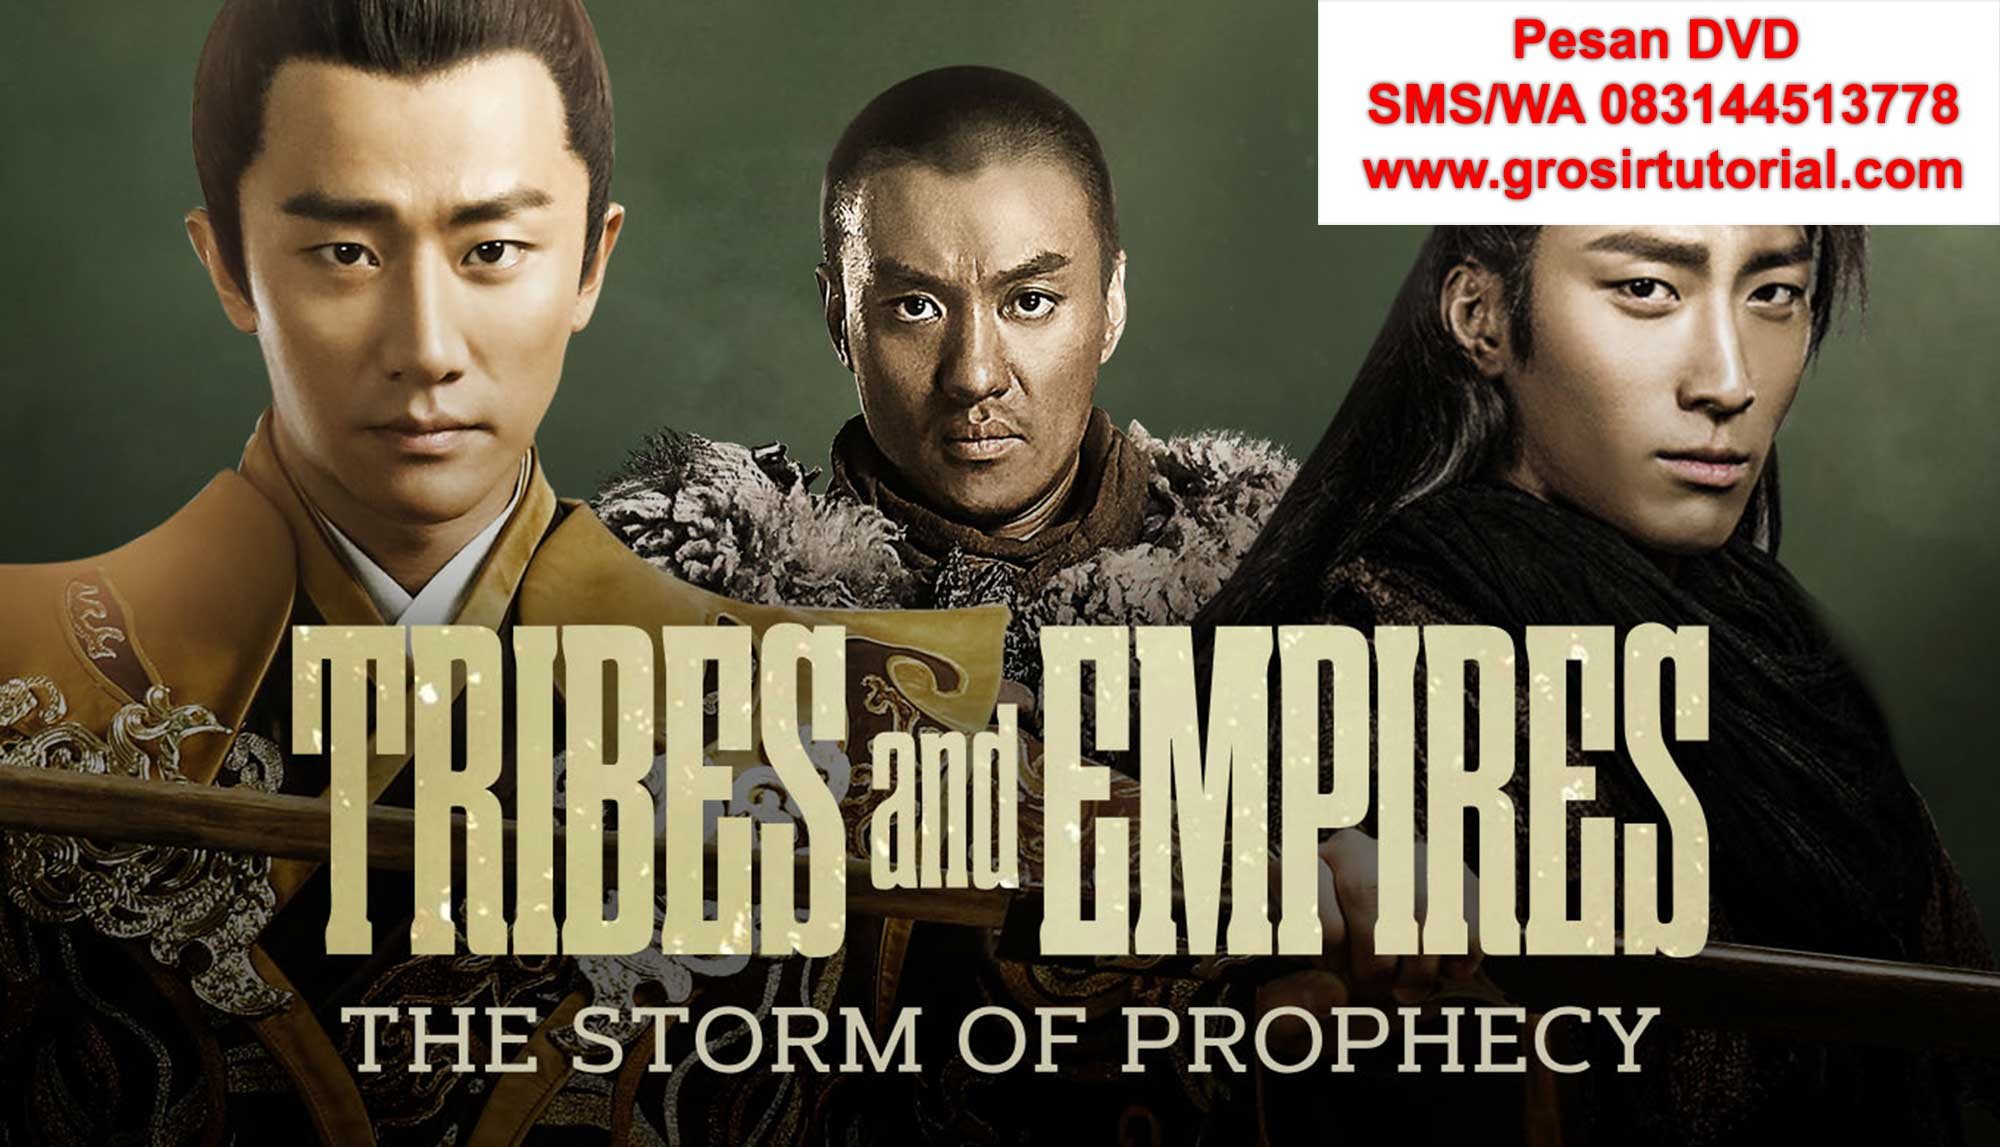 pesan-dvd-mandarin-Tribe-and-Empires-The-Strom-of-Prohecy